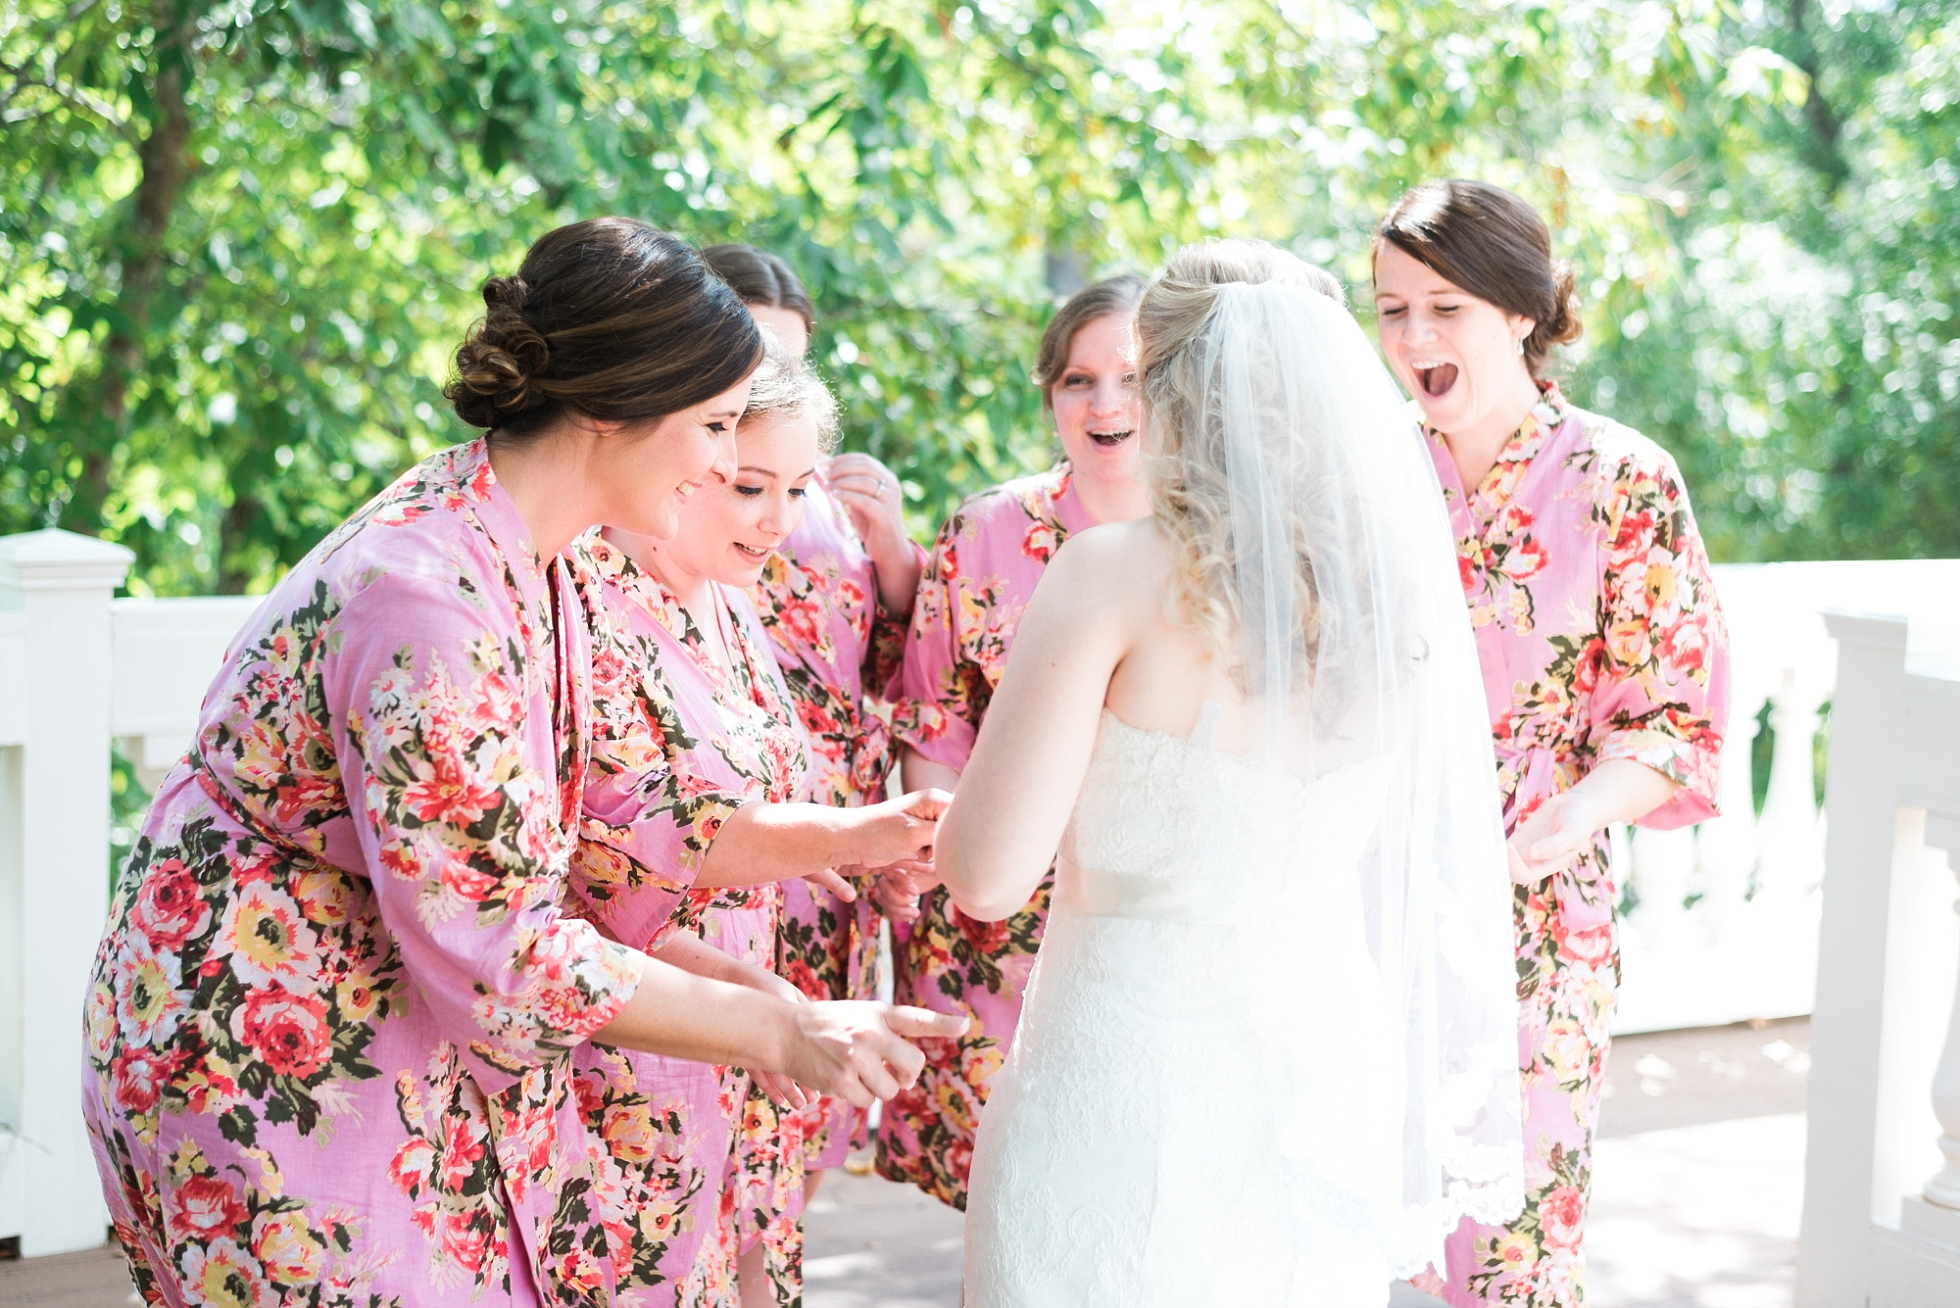 First look with Bridemaids | Kyle & Erin | Scarbrough Wedding | Children's Harbor | Laura Wilkerson Photography